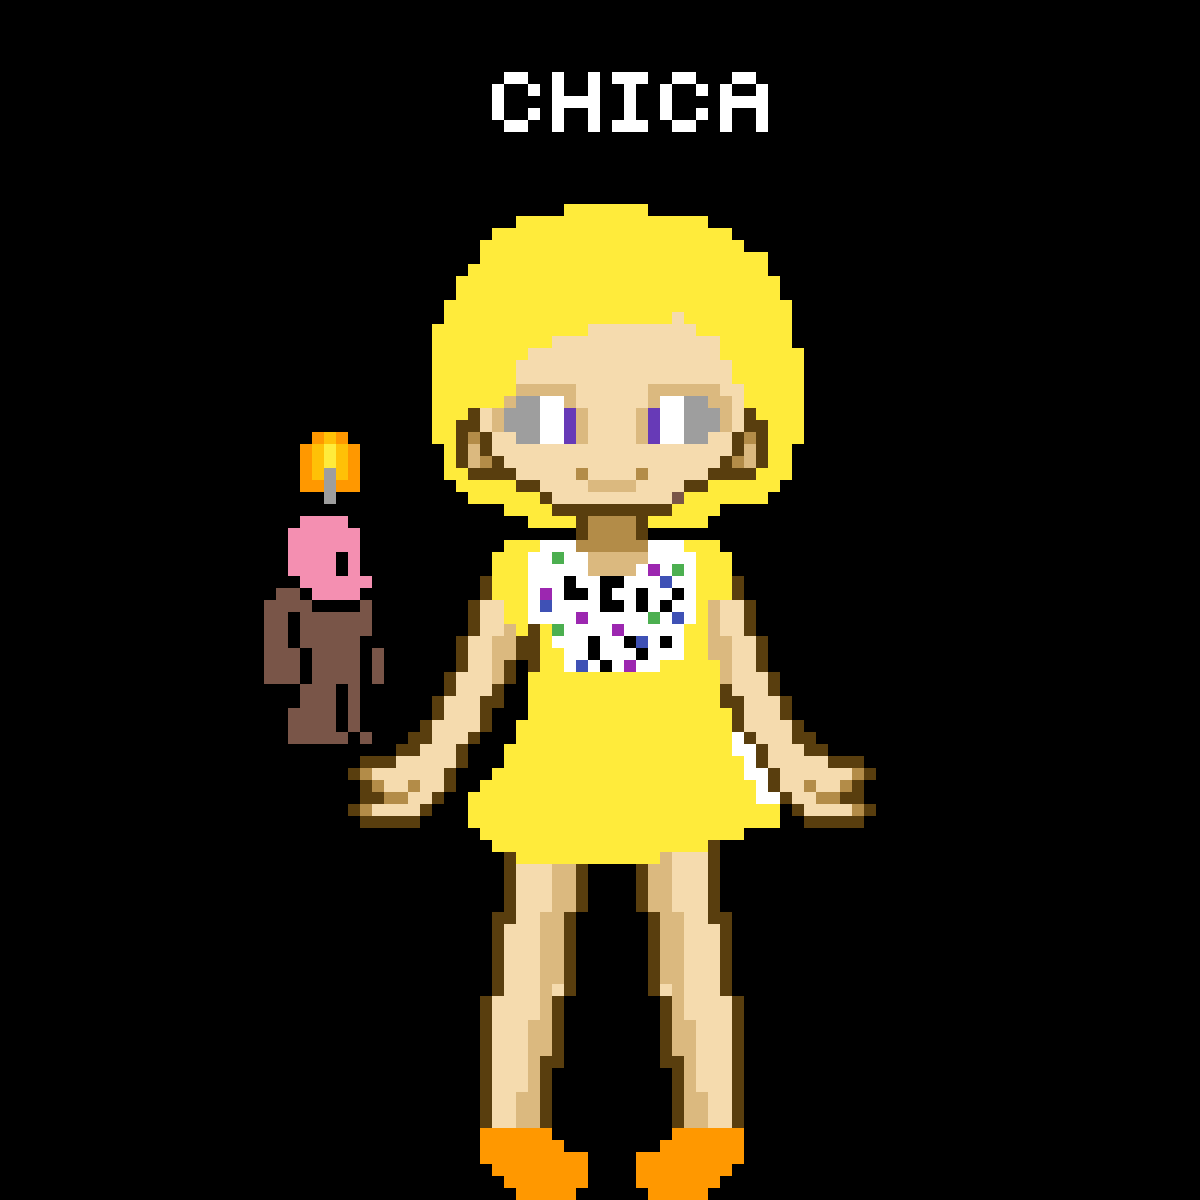 chica in real life by Asher-the-sloth